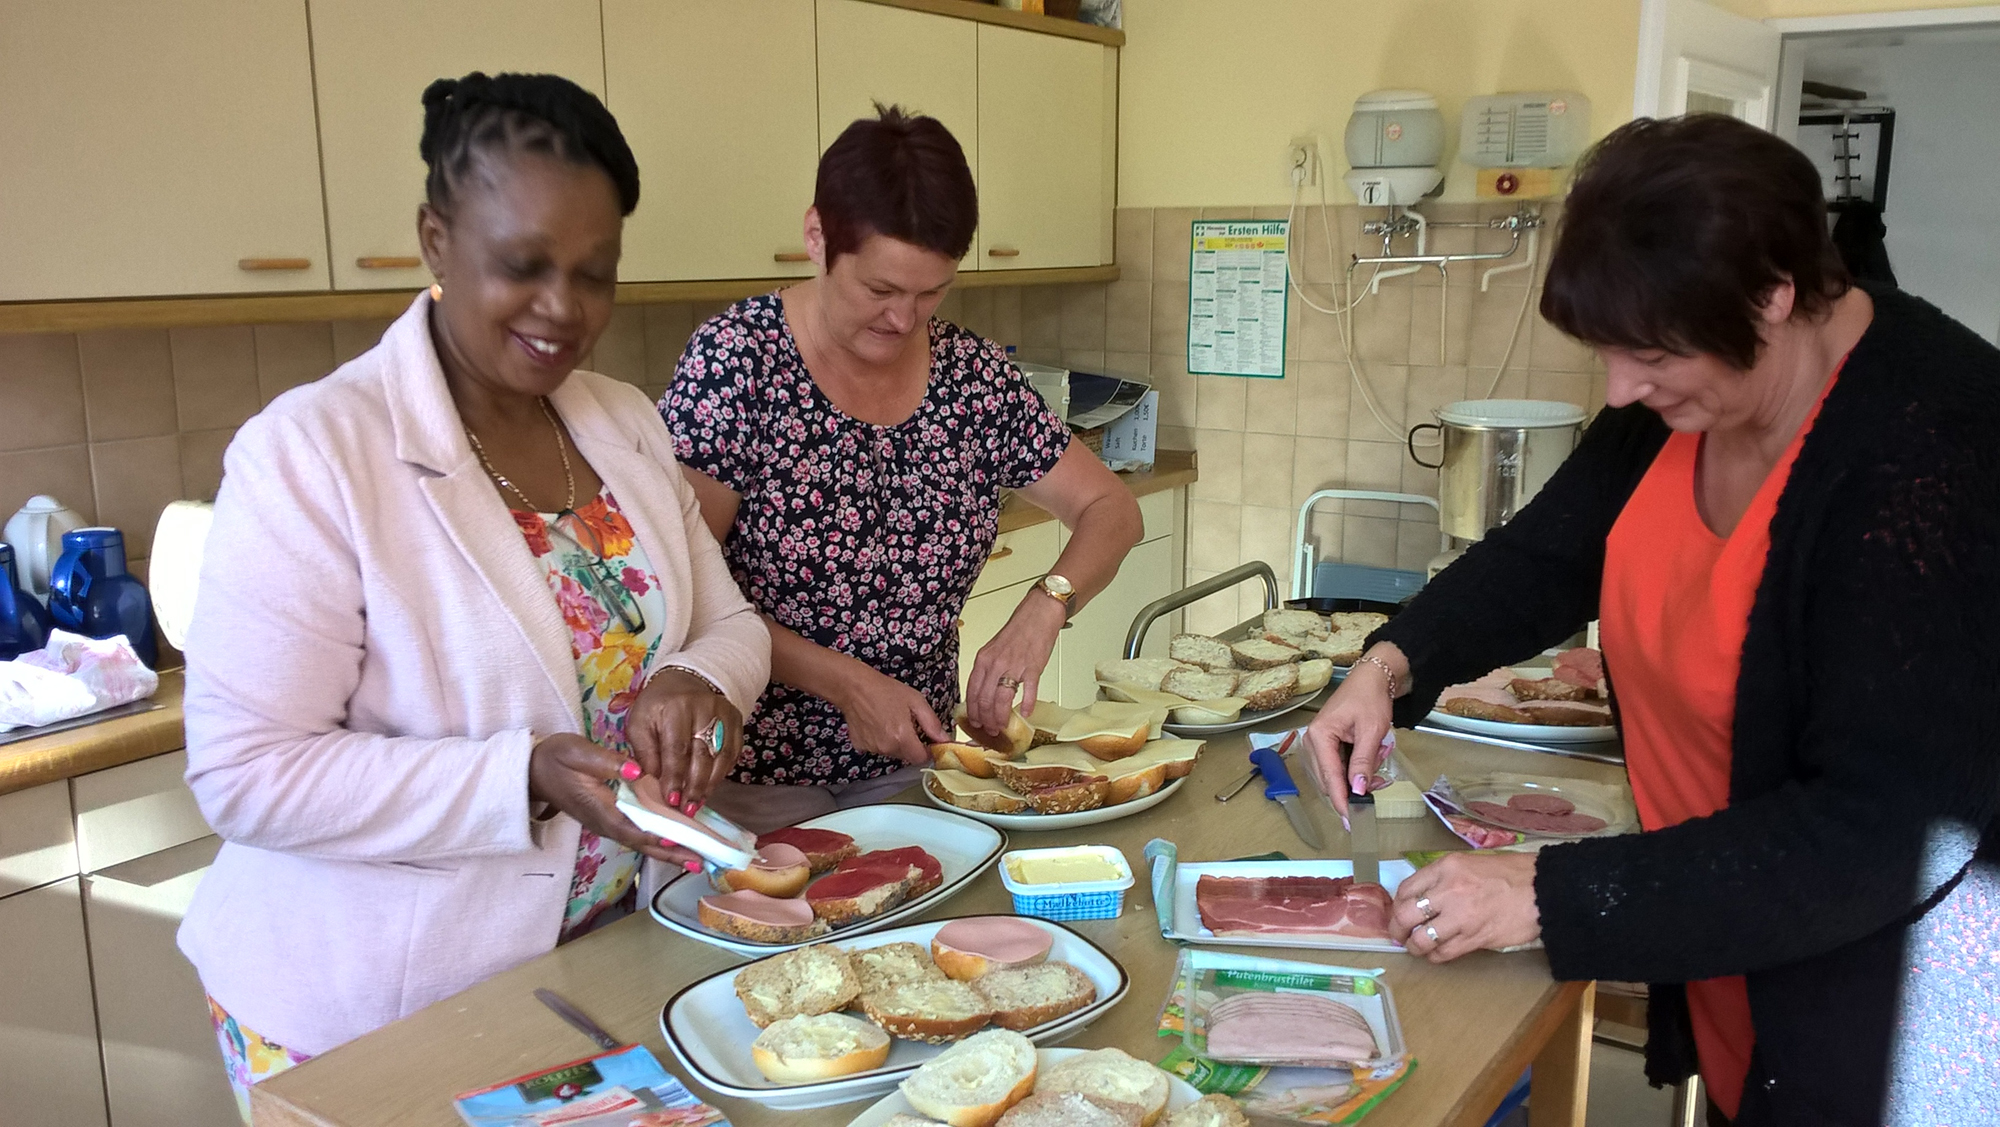 Parish secretary Carola Wientke, the house ceeper of the parish hall and Lungile Majozi preparing the meal to have after die annual meeting meeting of Friends of Partnership.